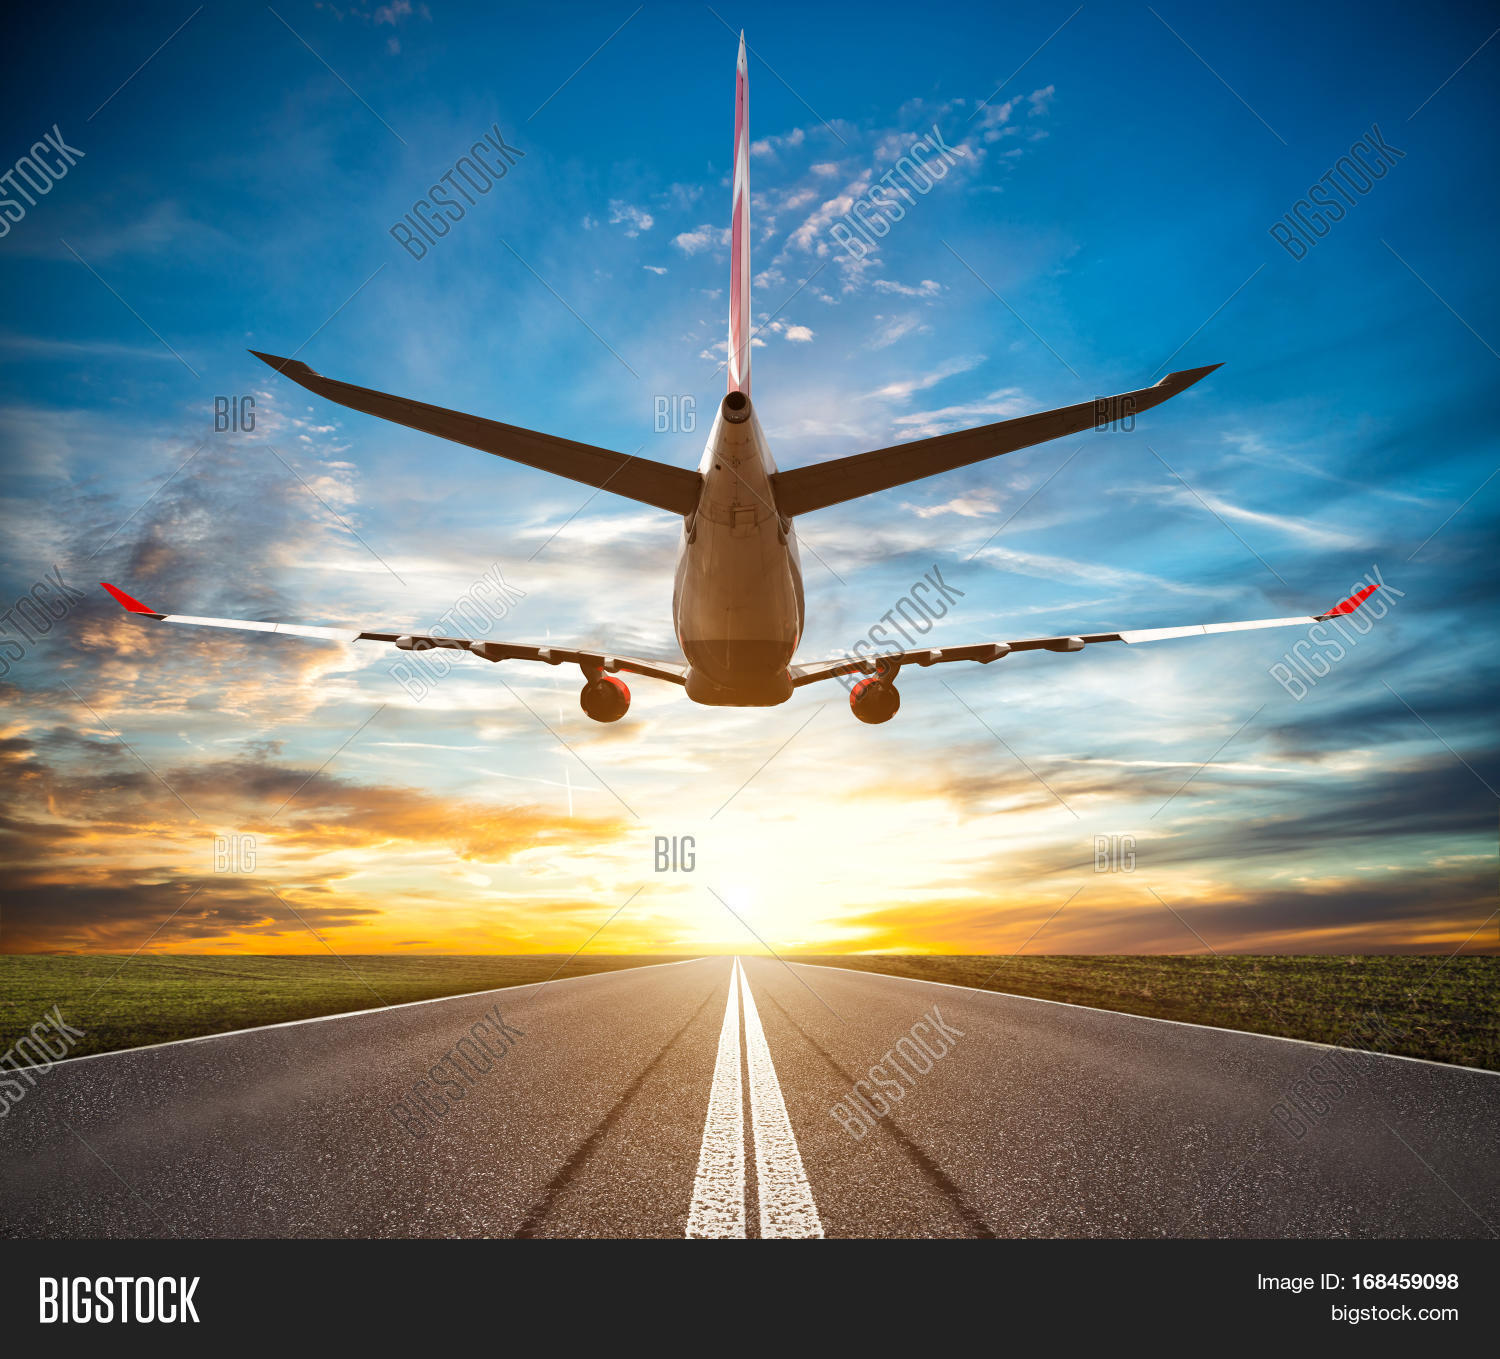 Passenger Plane Fly Over Take-off Image & Photo | Bigstock